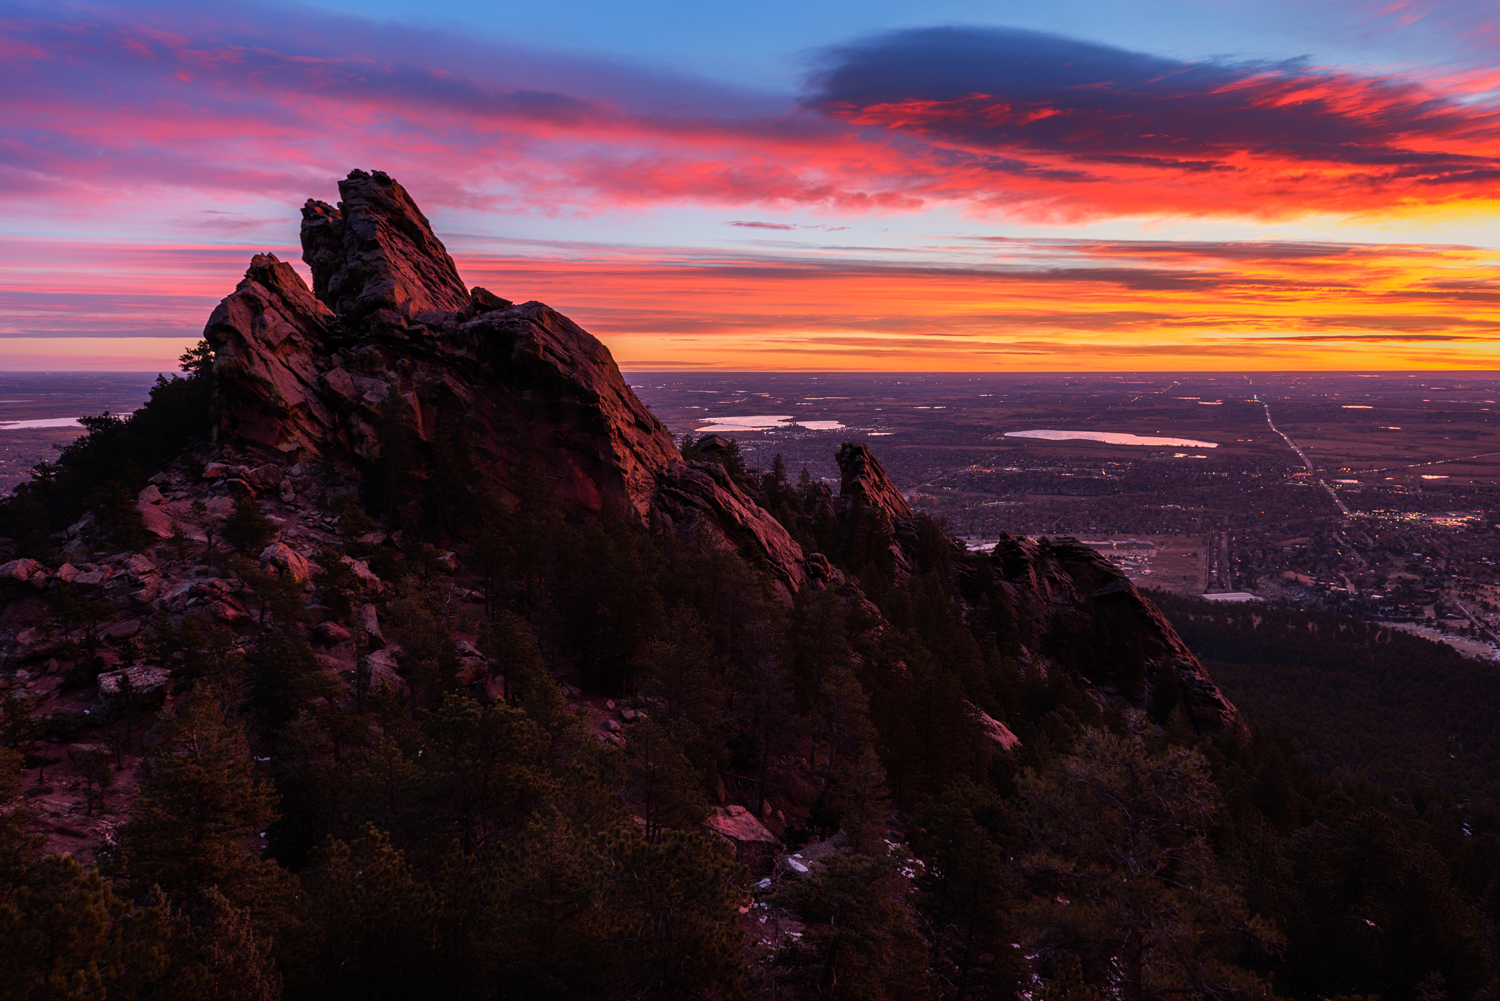 Fiery Sunrise, First Flatiron. Boulder, Colorado, 2014